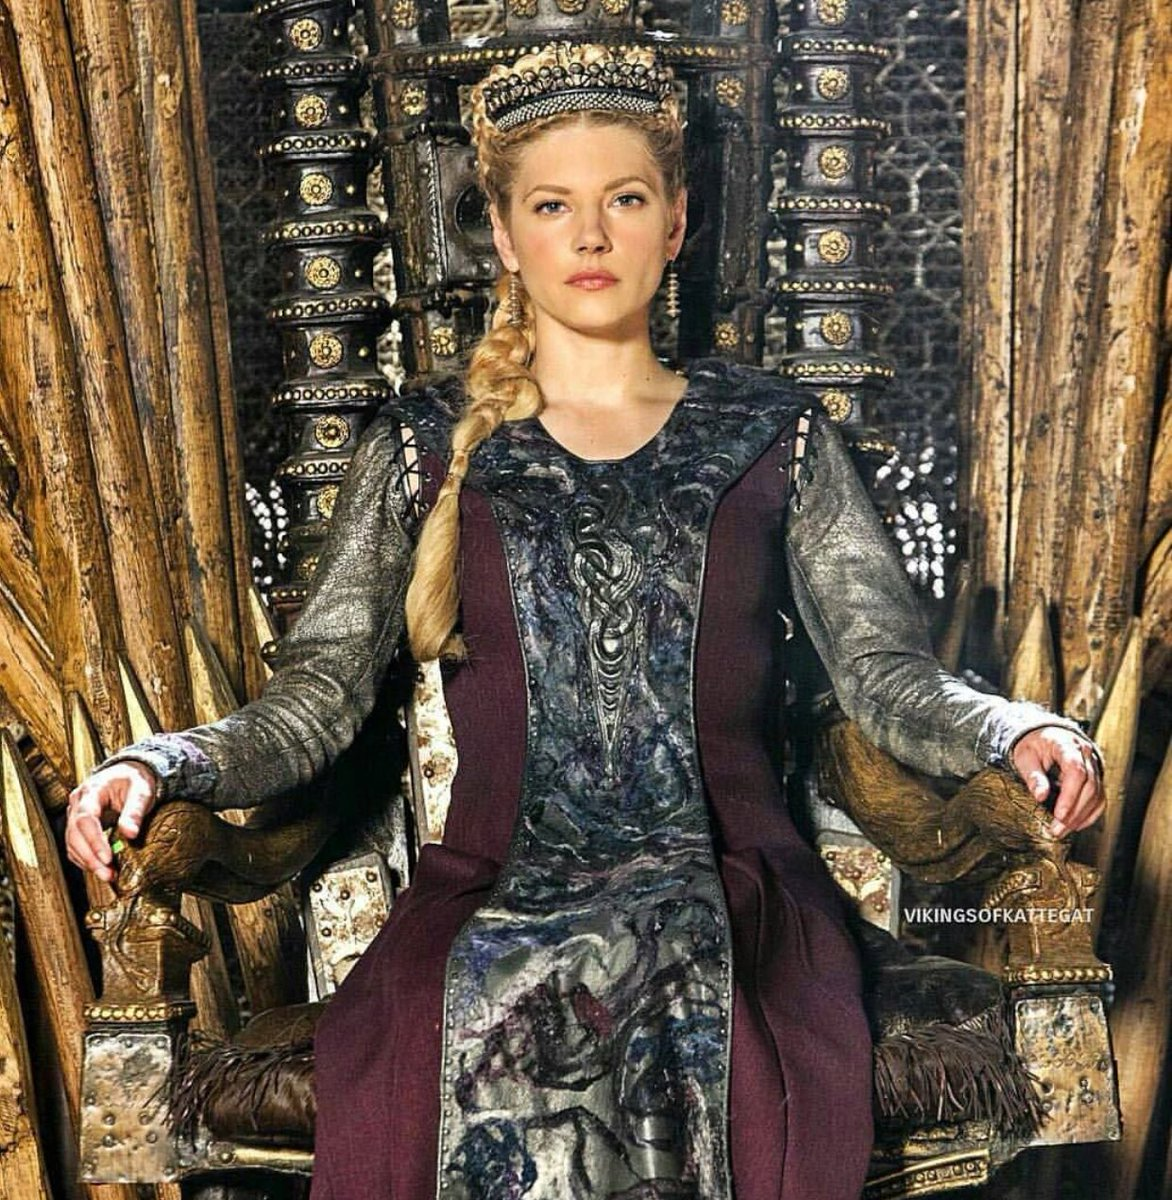 Sneak peak of Lagertha in Season 5.  Premiering Nov 29th. Who&#39;s ready?  #Vikings <br>http://pic.twitter.com/HAg1TpCwxN